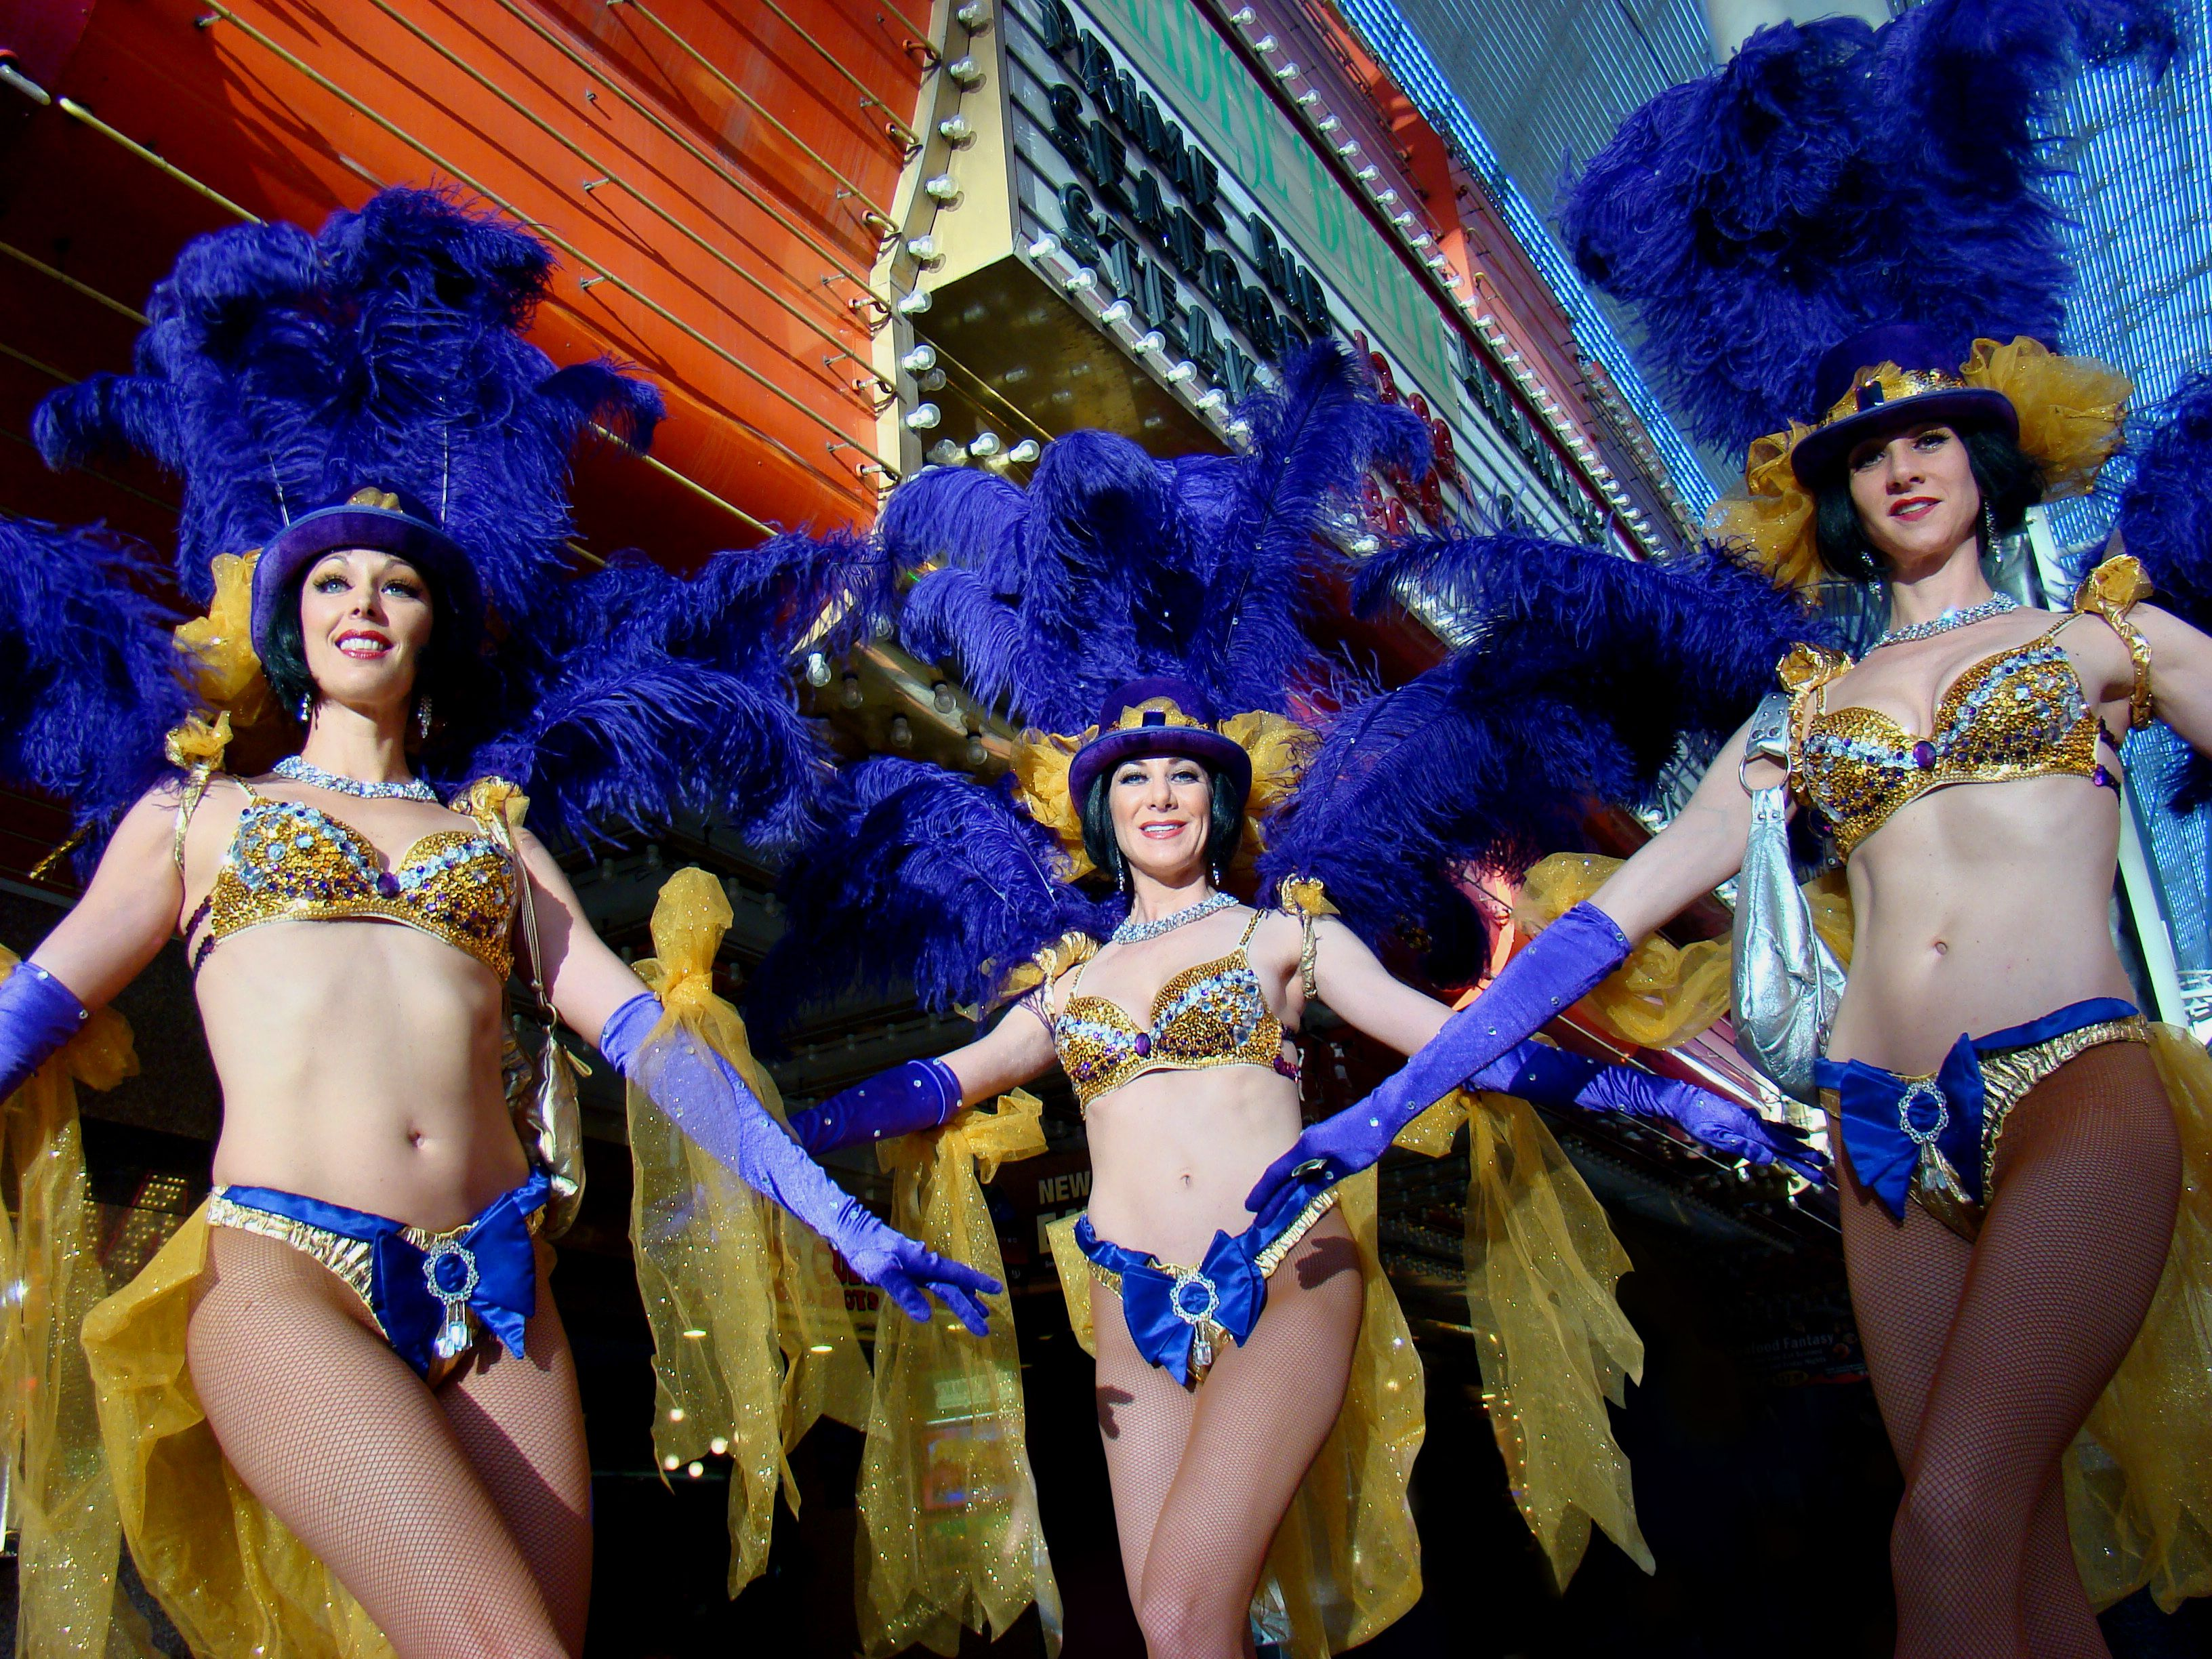 Best topless burlesque shows in vegas